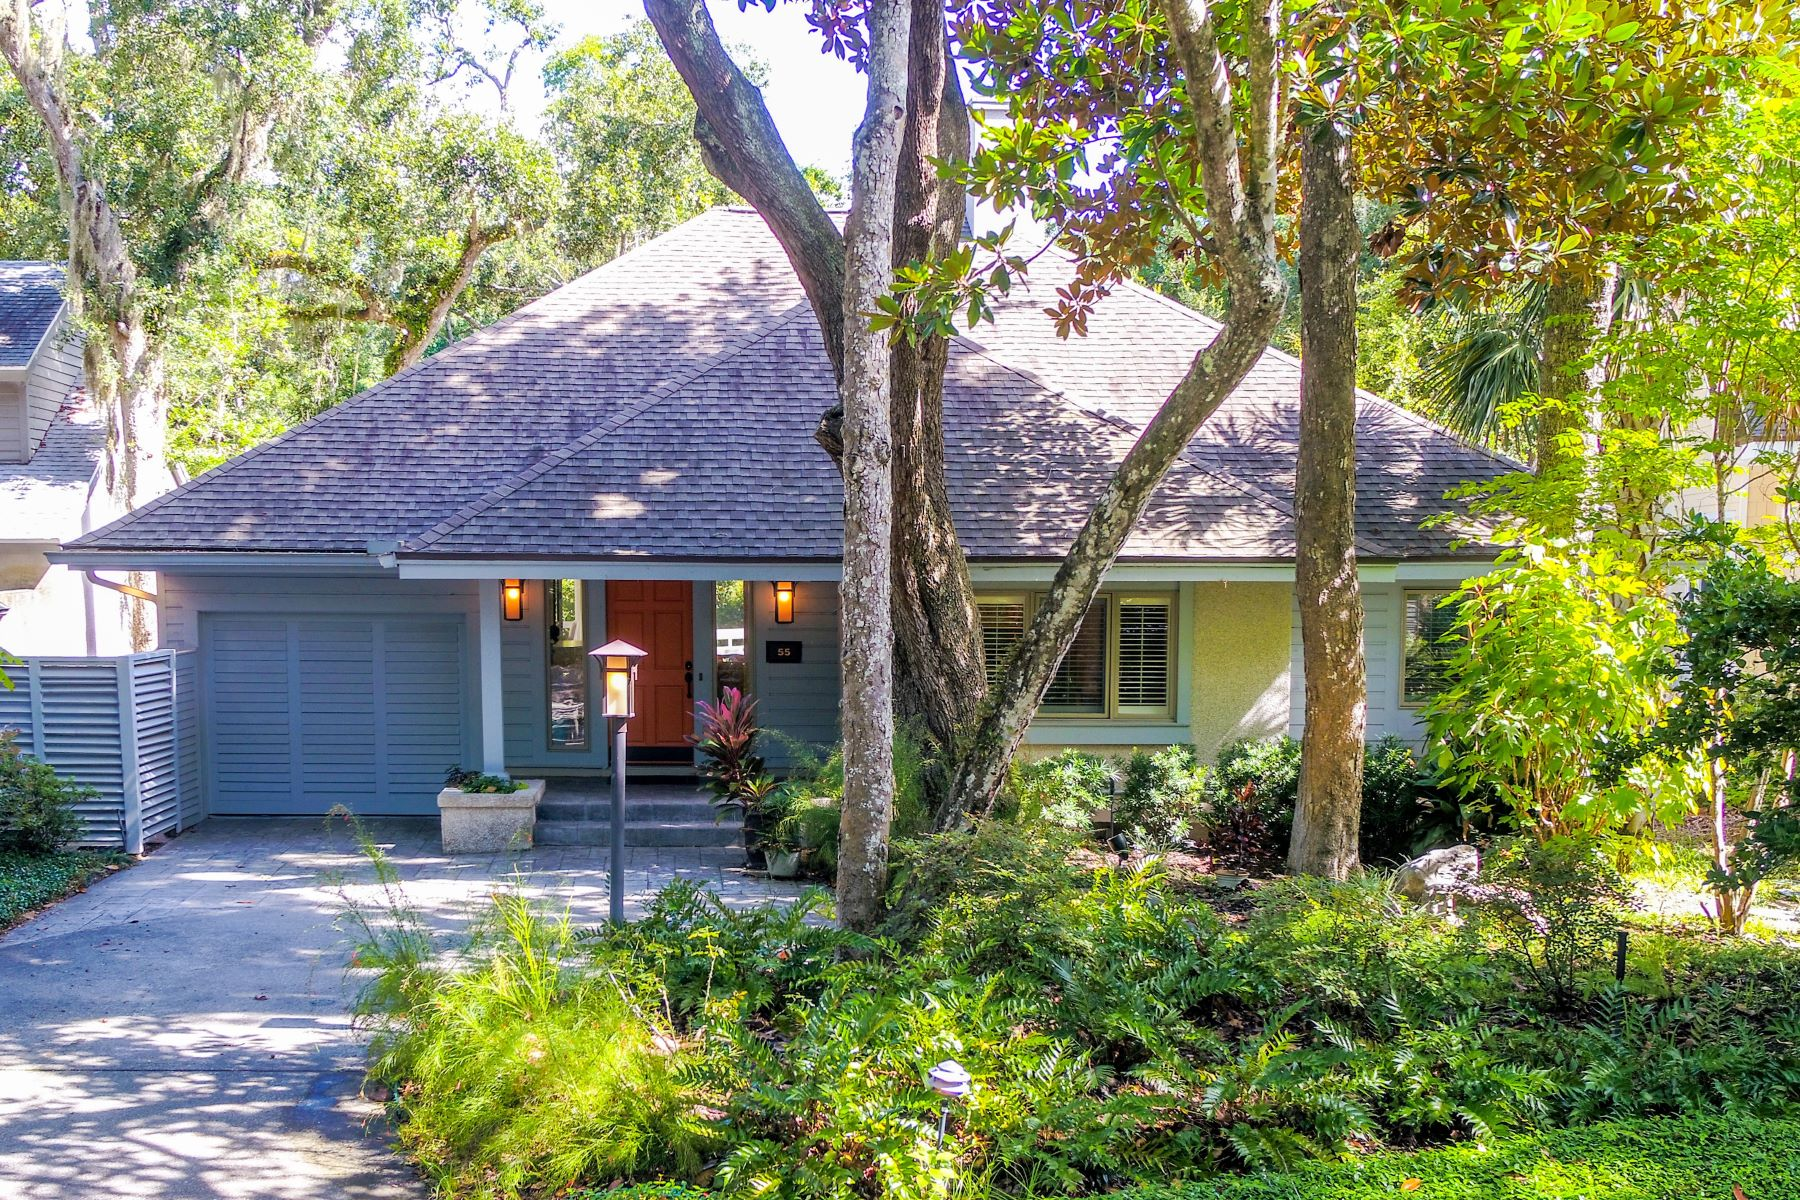 Single Family Homes for Active at 55 Laurel Oak Rd, Amelia Island 55 Laurel Oak Rd Amelia Island, Florida 32034 United States